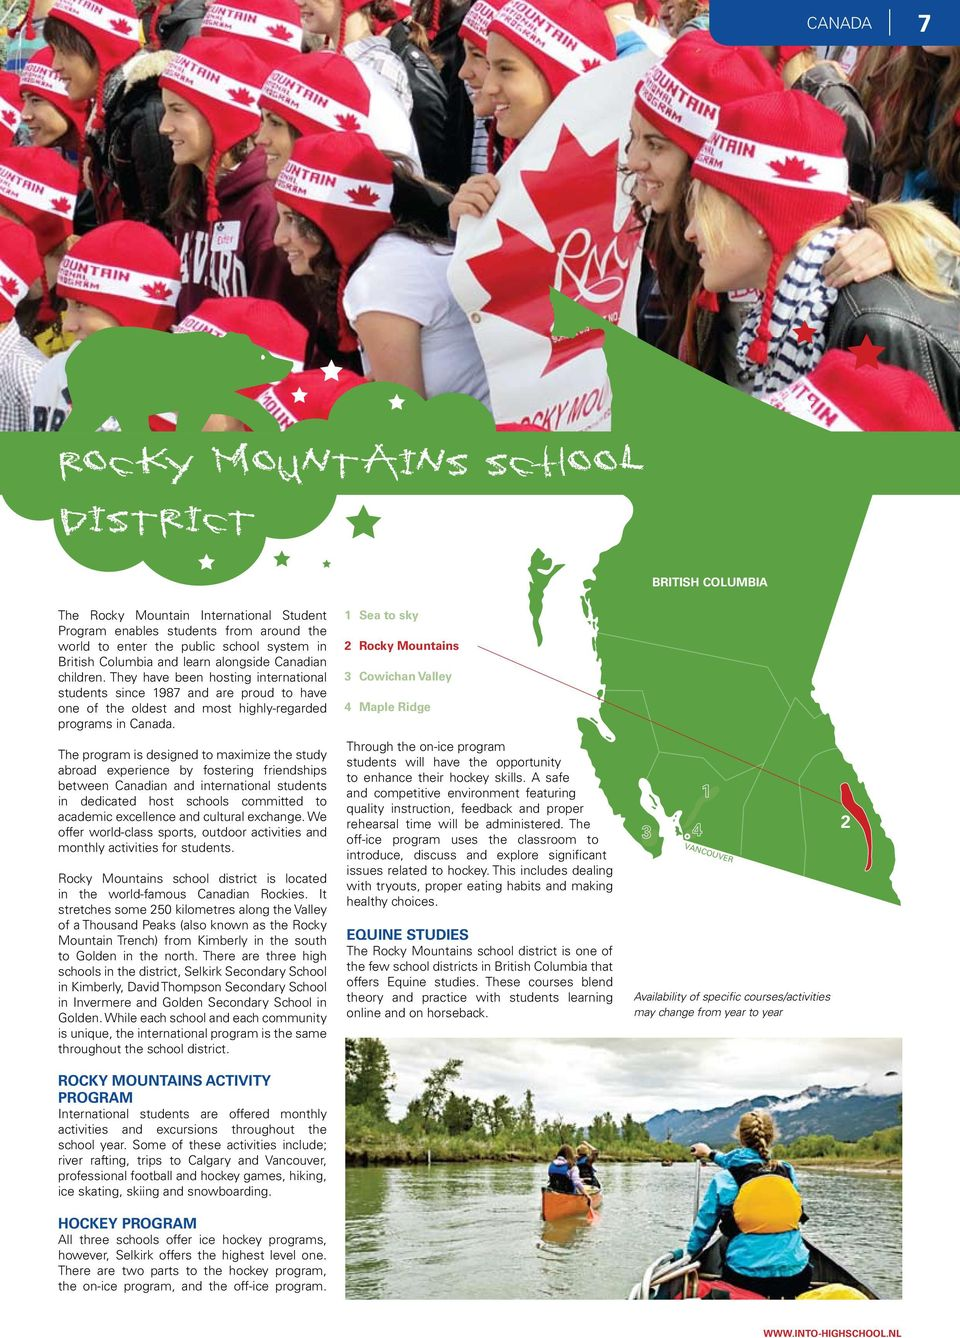 1 Sea to sky 2 Rocky Mountains 3 Cowichan Valley 4 Maple Ridge The program is designed to maximize the study abroad experience by fostering friendships between Canadian and international students in